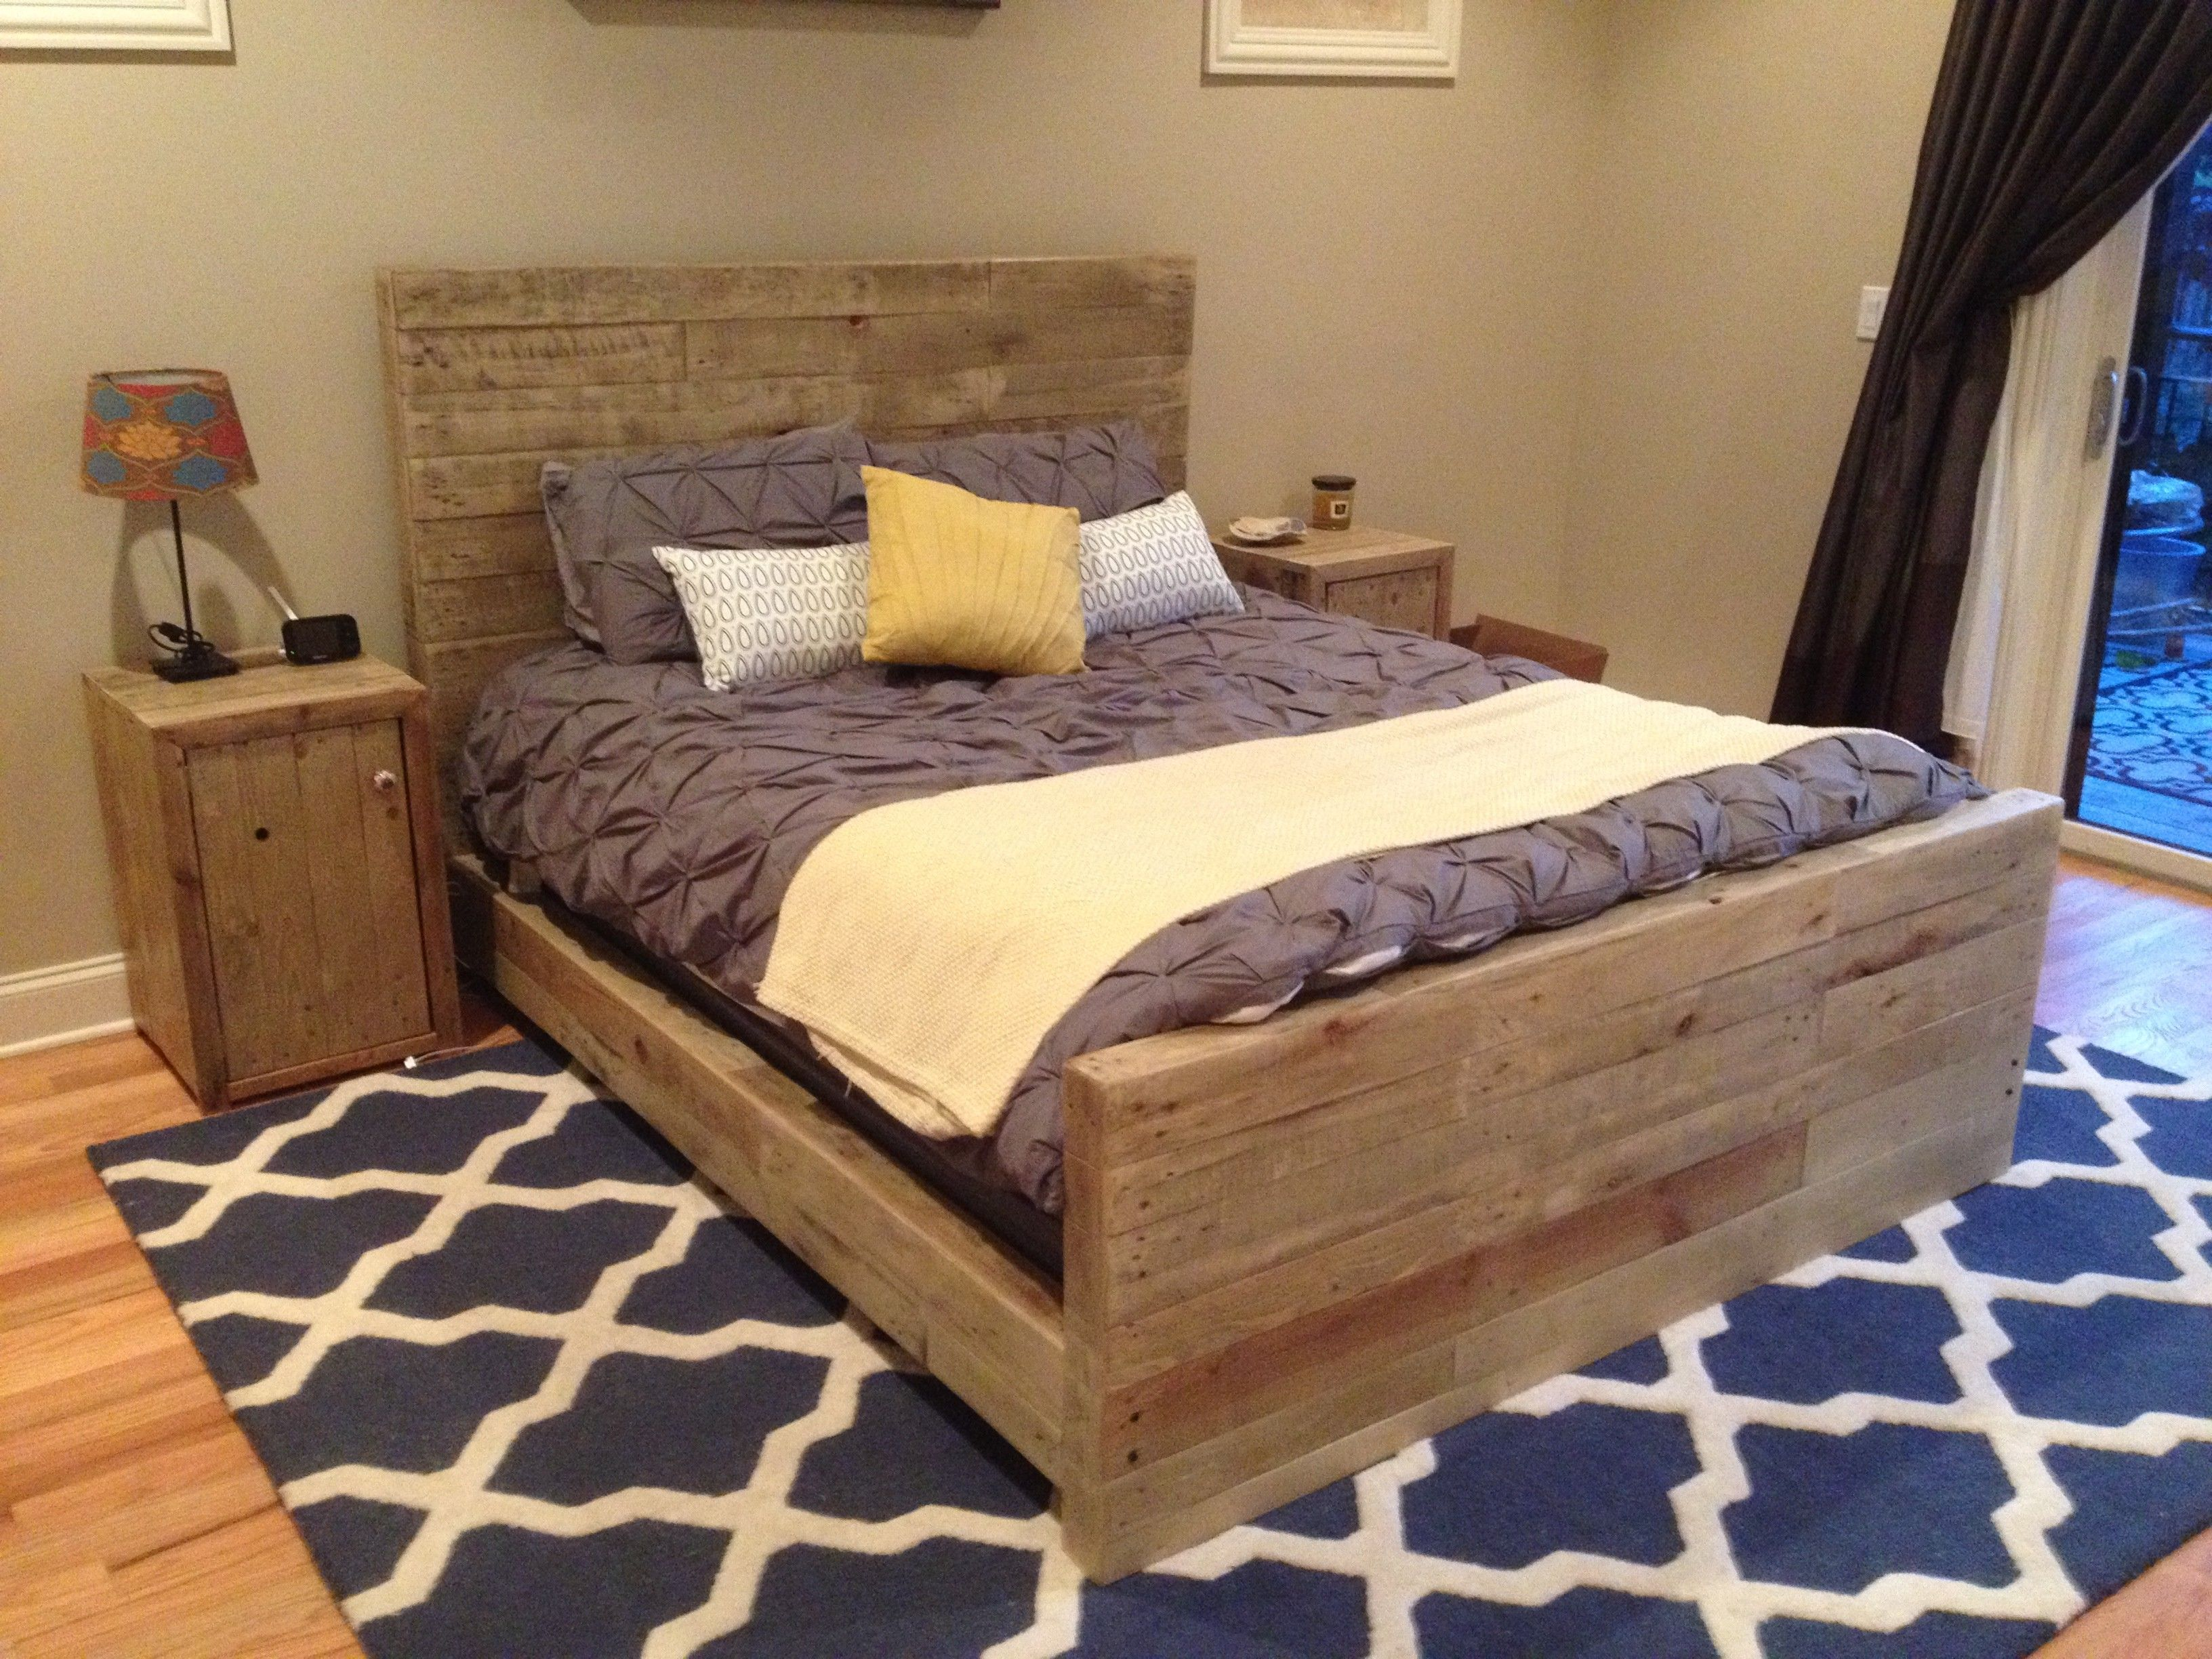 Unstained Birch Wood Bed Frame With Headboard and Footboard Placed